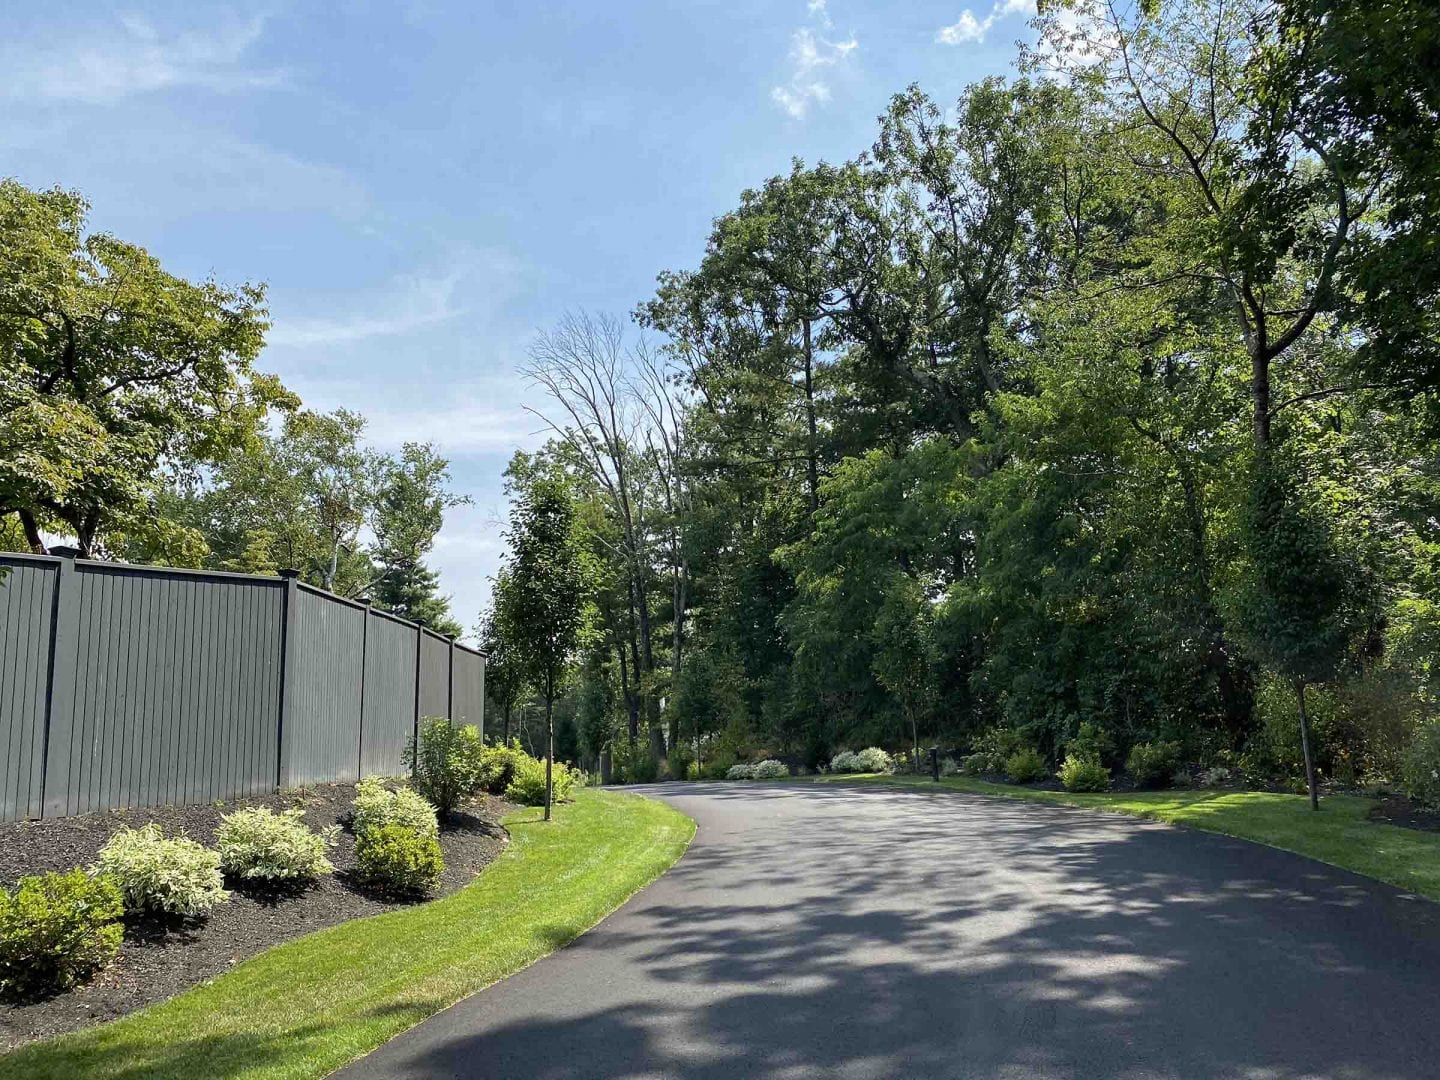 This picture displays a residential road that we recently completed landscape design work on. There is green grass, trees and shrubs lining the road.